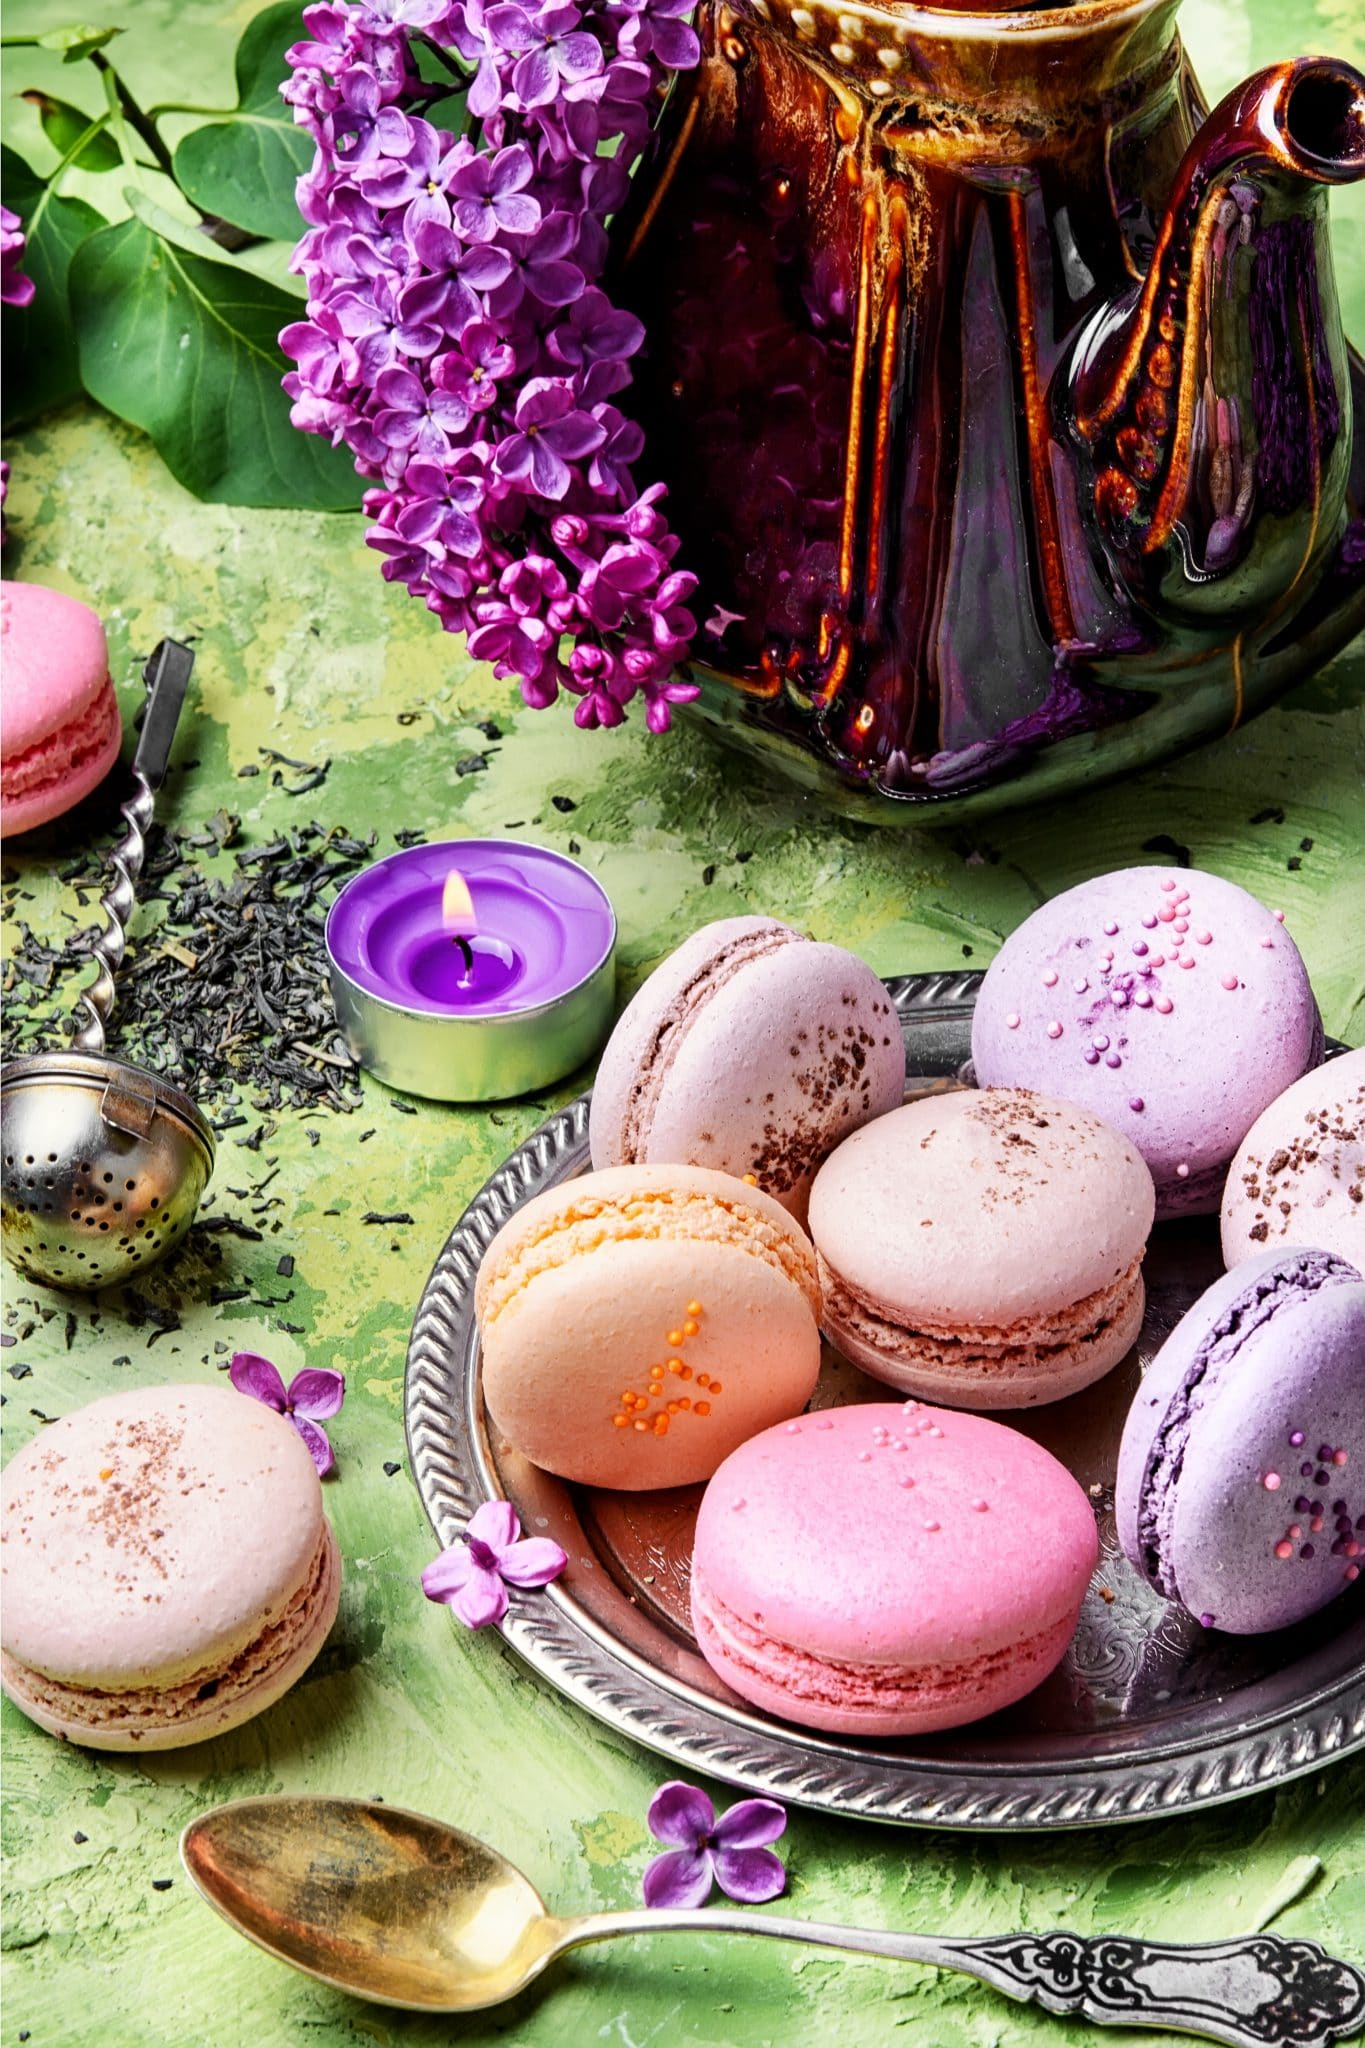 sweet-french-macaroons-PQWW93U